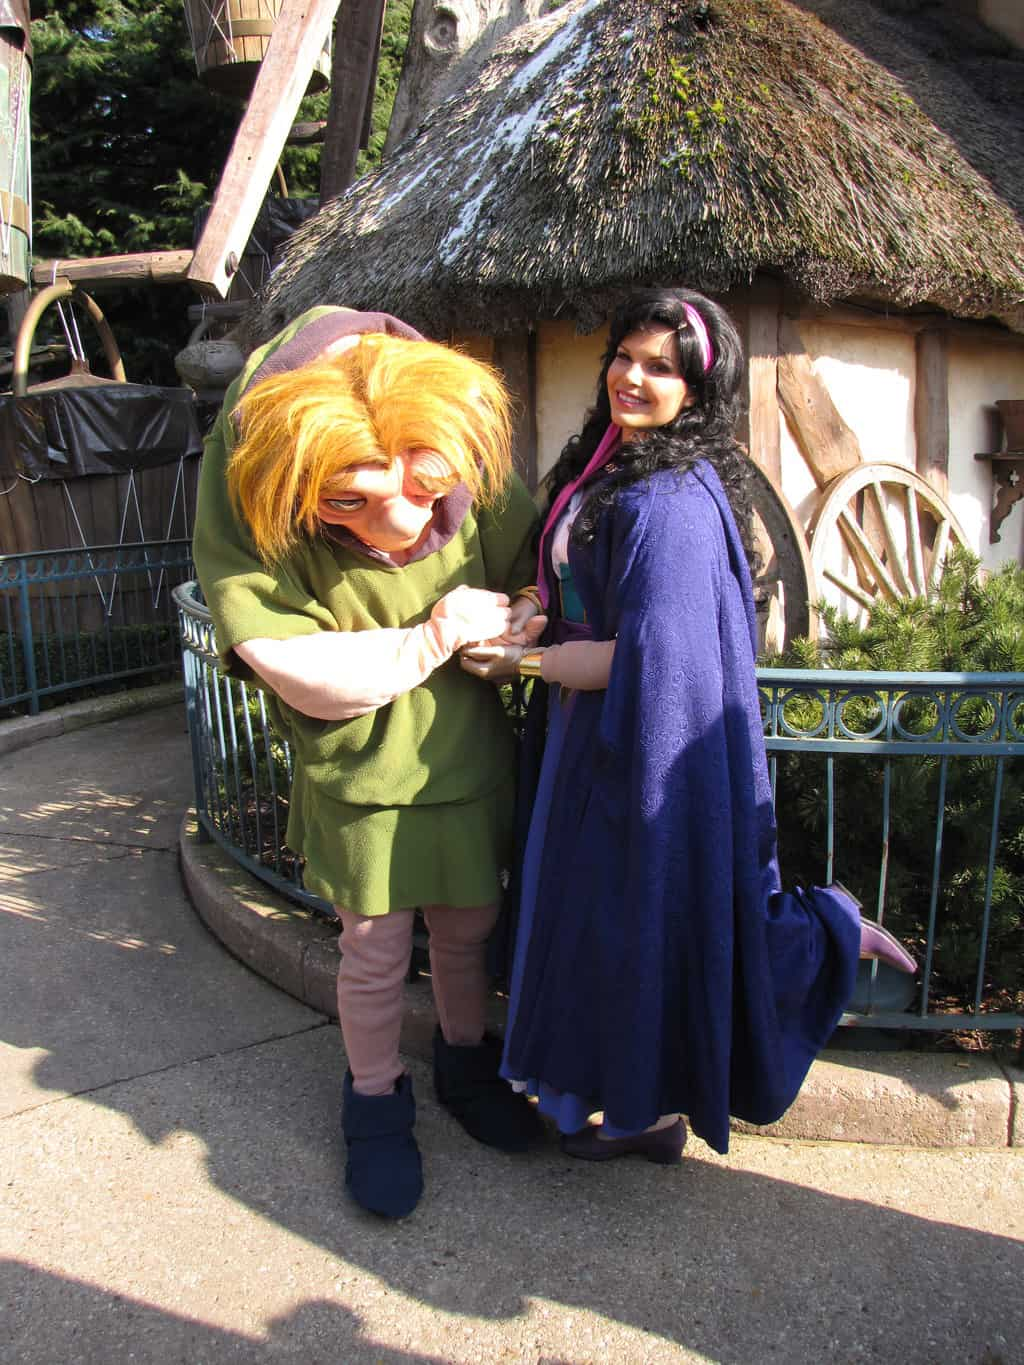 Esmeralda & Quasimodo did Meet'n'Greets on Valentine Day in 2010. Quasimodo can't be found in the Parks normally